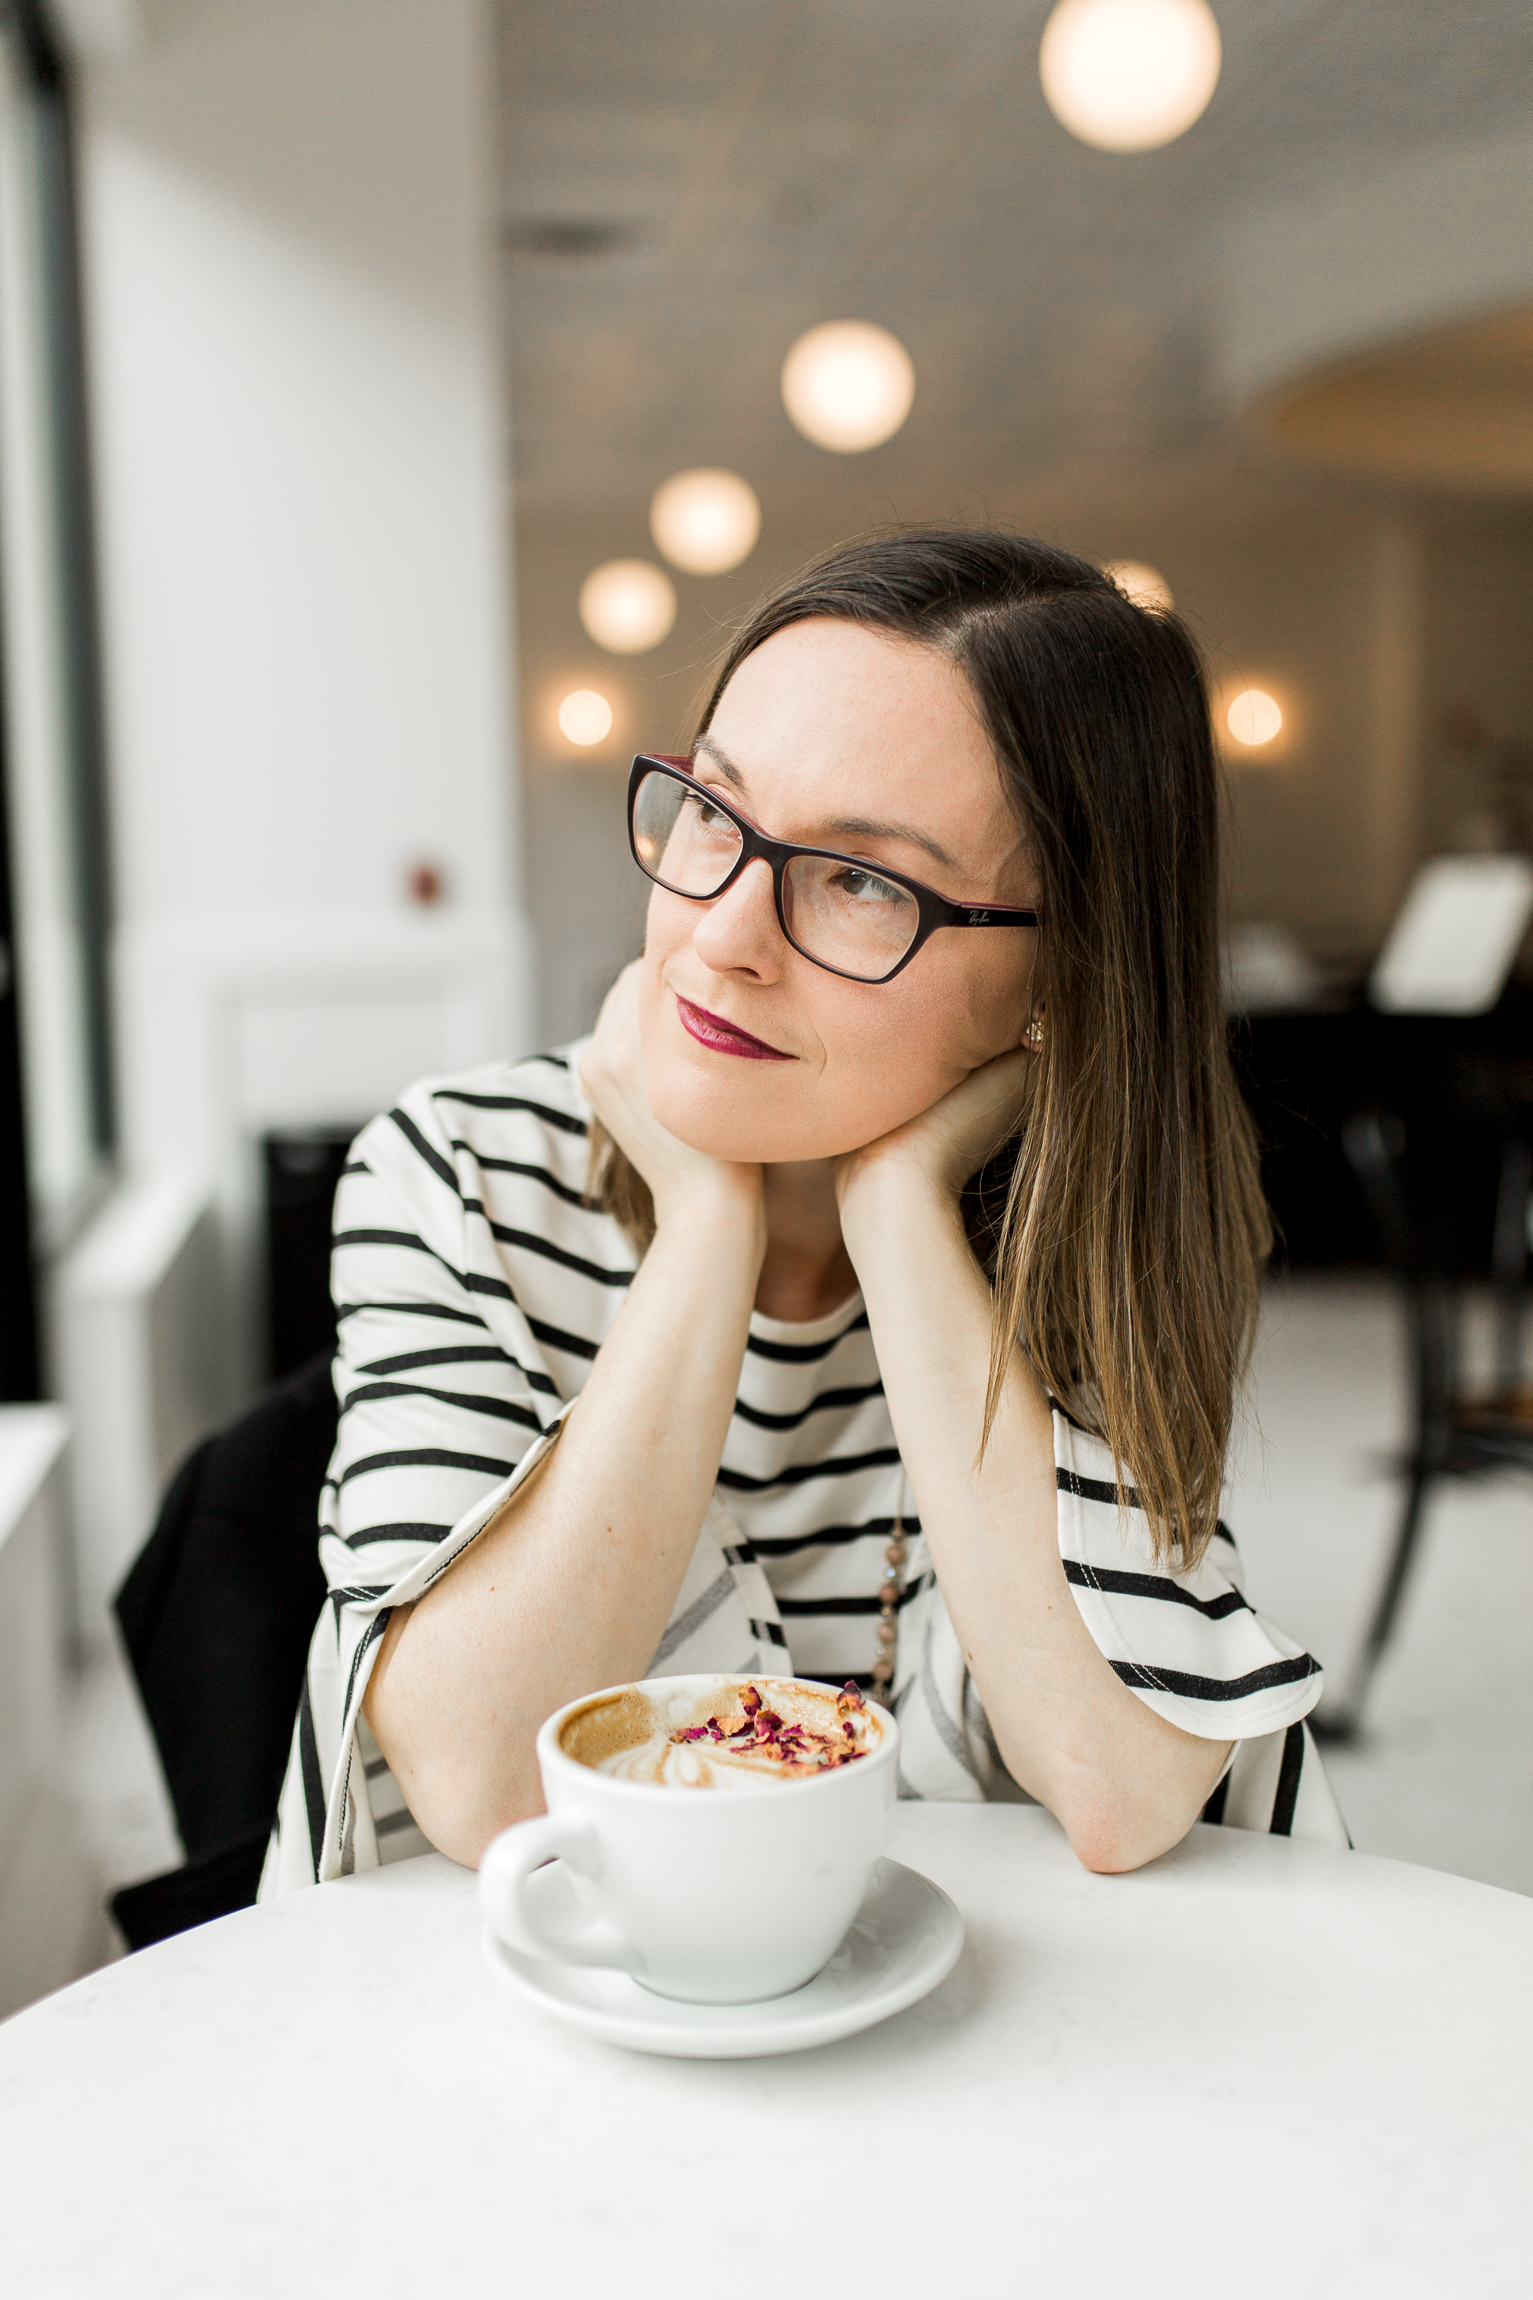 Thoughtful woman with a latte in a coffee shop, Kansas City lifestyle photographer, Kansas City senior photographer, Kansas City small business headshots, Kansas City lifestyle blogger, candid portrait, winter portrait session, Monarch Coffee